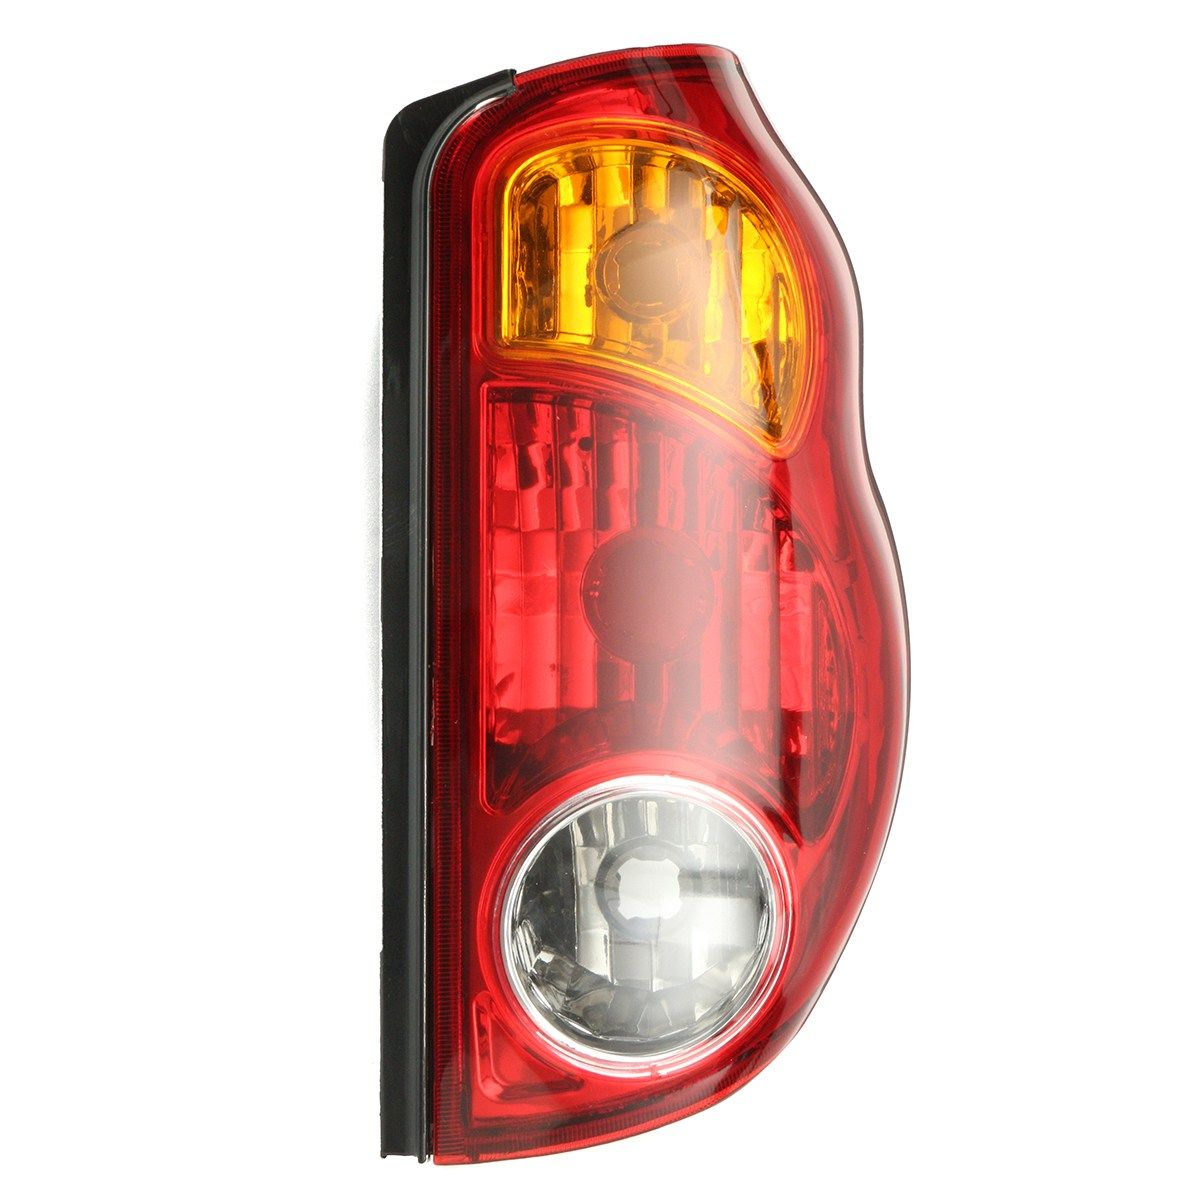 1Pcs Car Rear Lamps for Mitsubishi L200 Pickup 2006- Truck Warning Lights Tail Light Tailights Rear Parts Right Hand Len